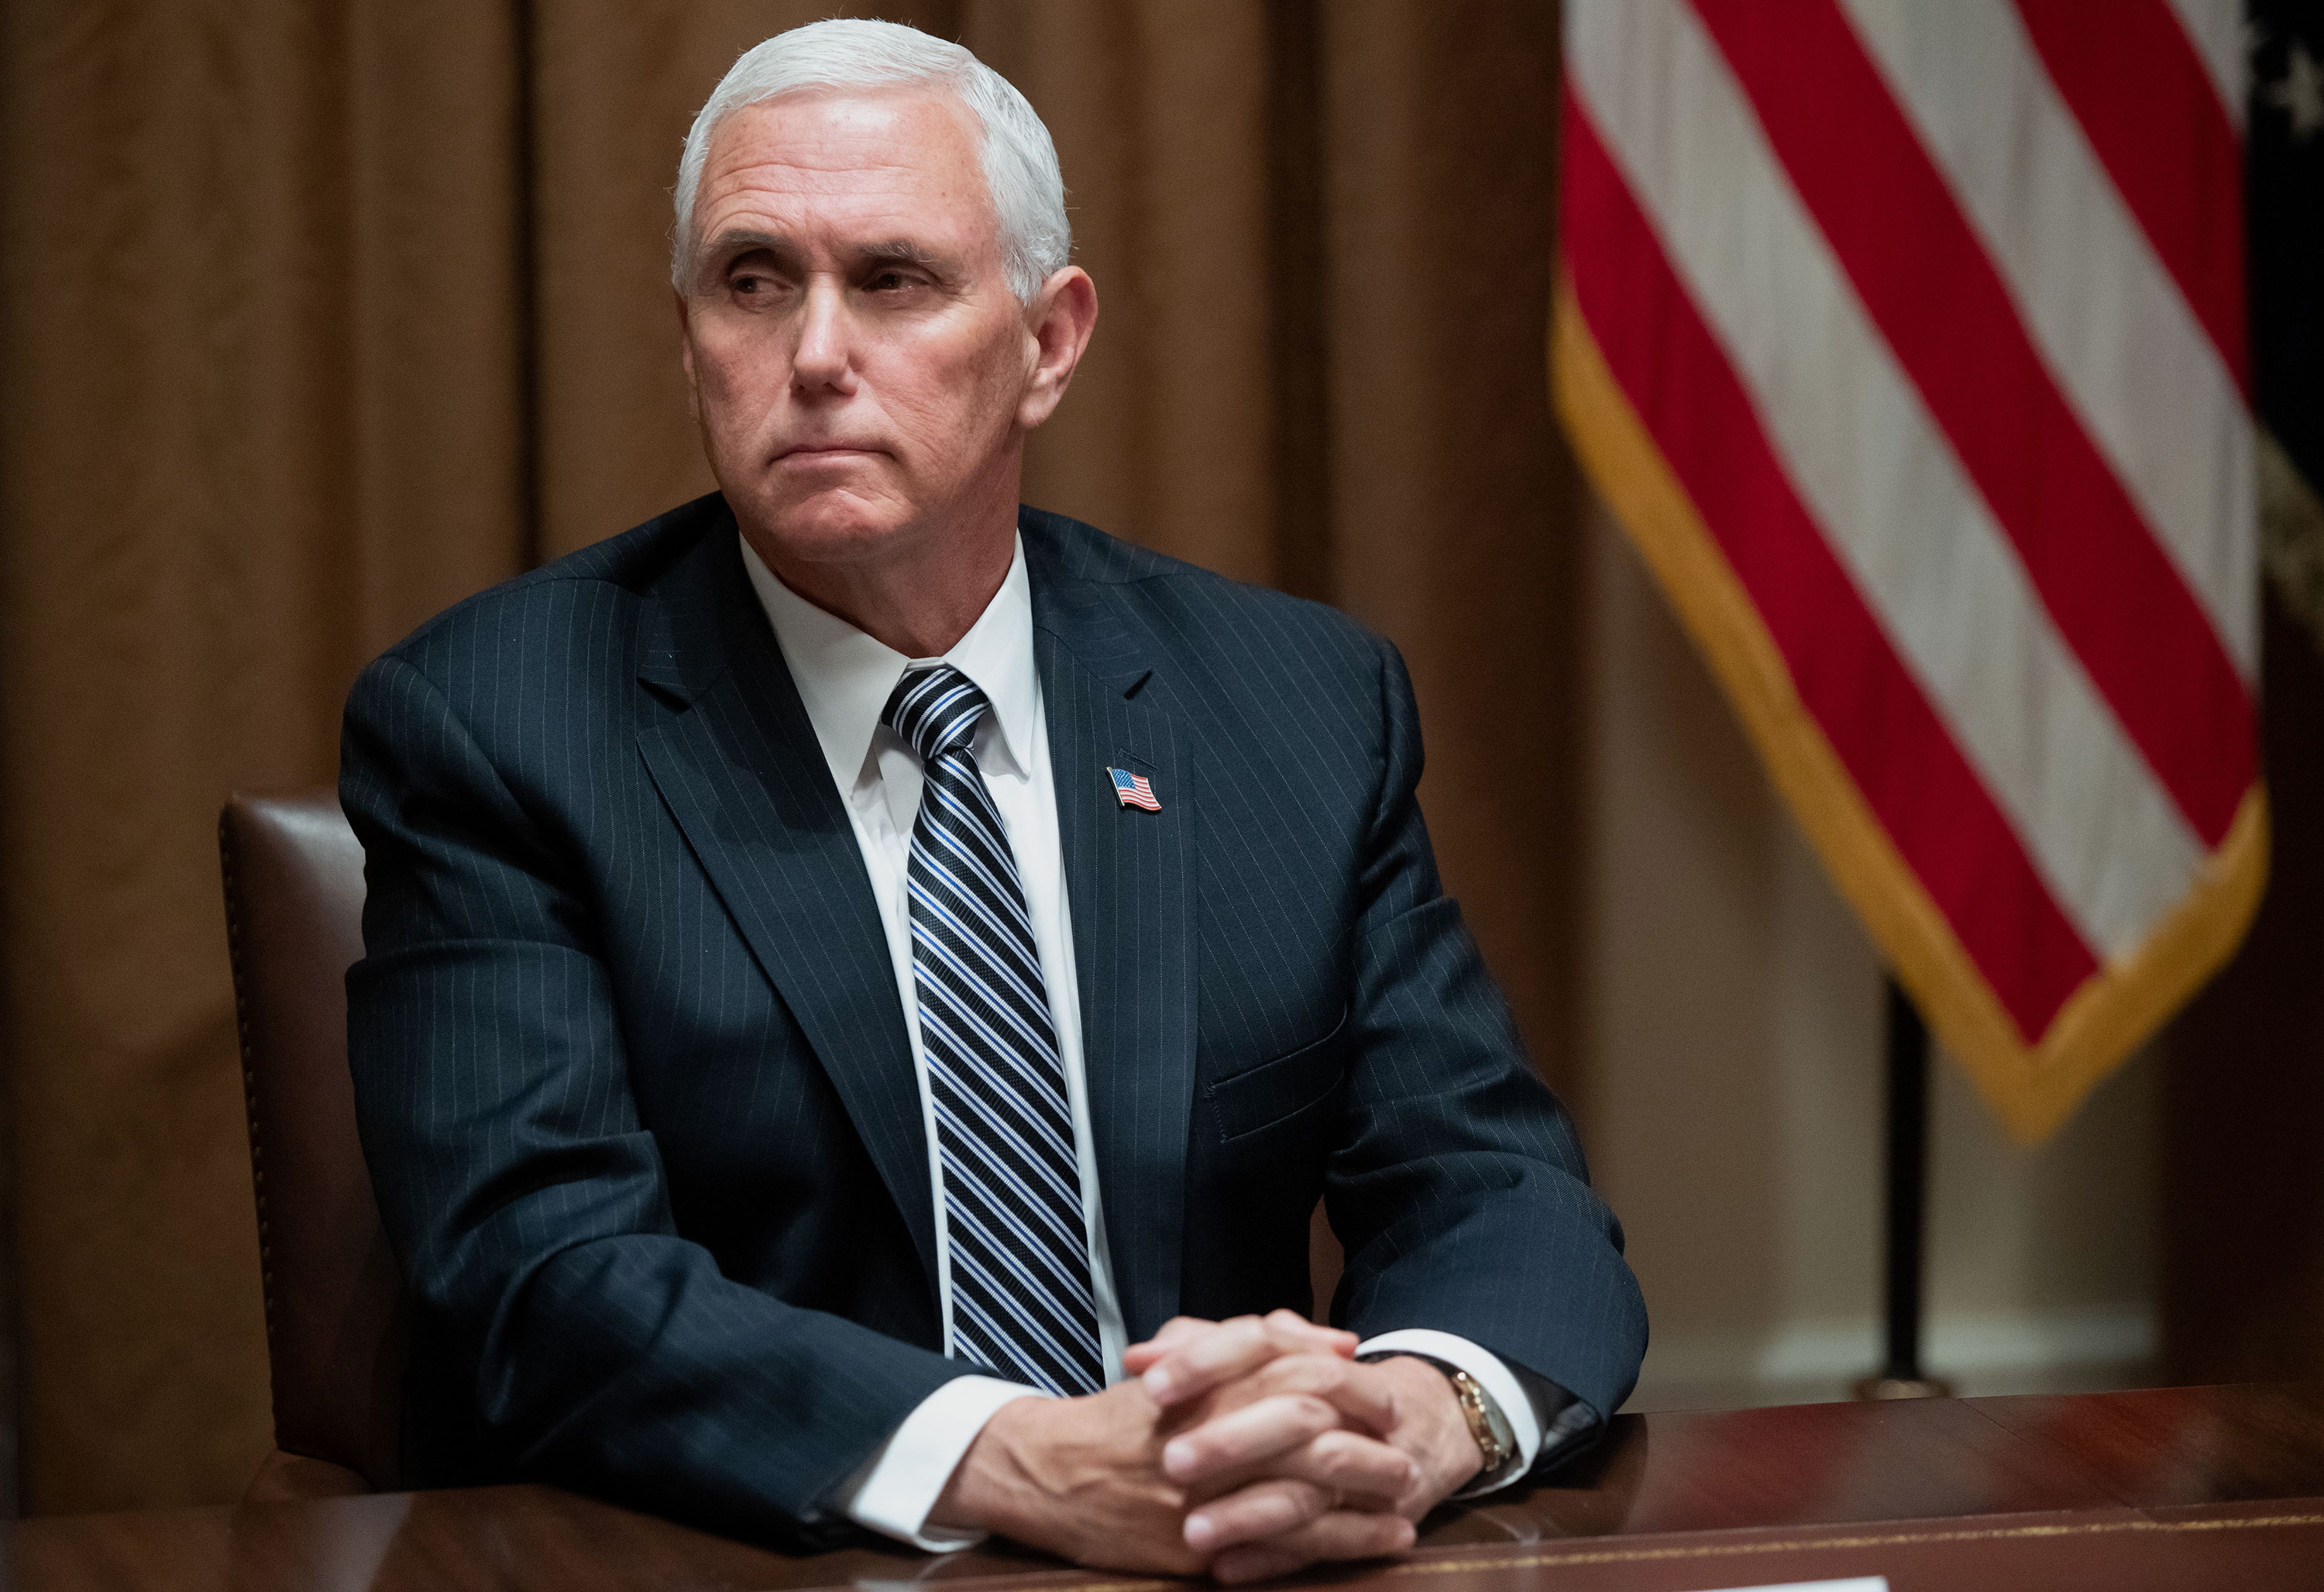 Vice President Mike Pence is attending a roundtable at the White House on June 15 in Washington.